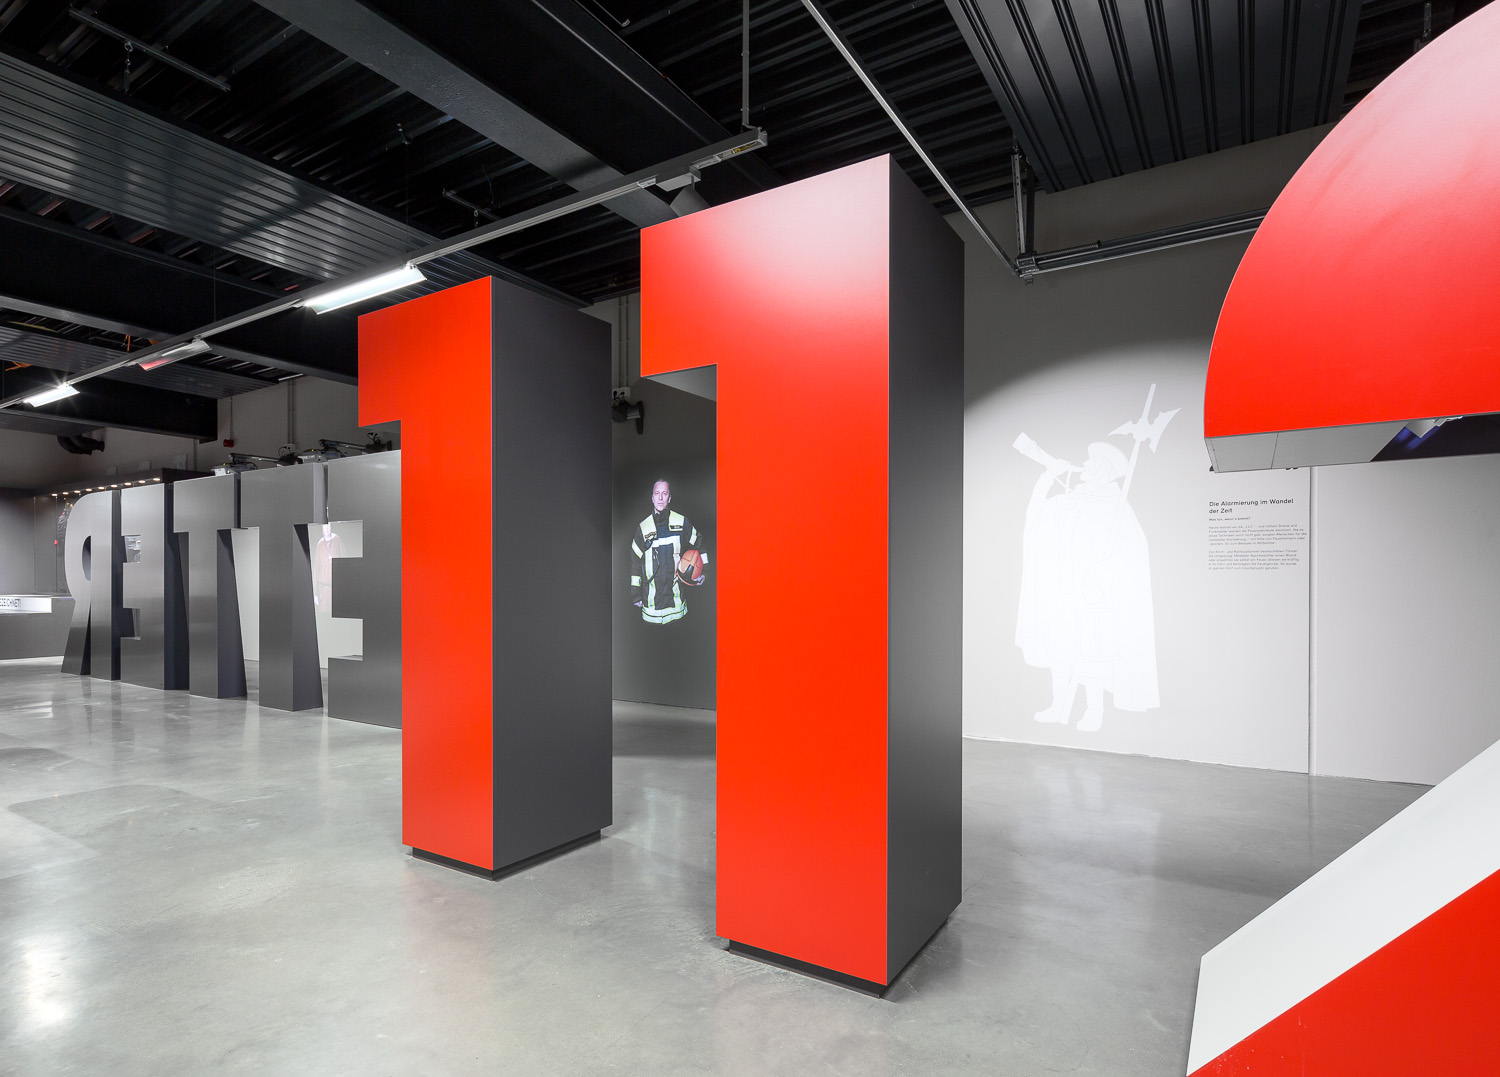 Large red numbers and black letters stand in the middle of the room